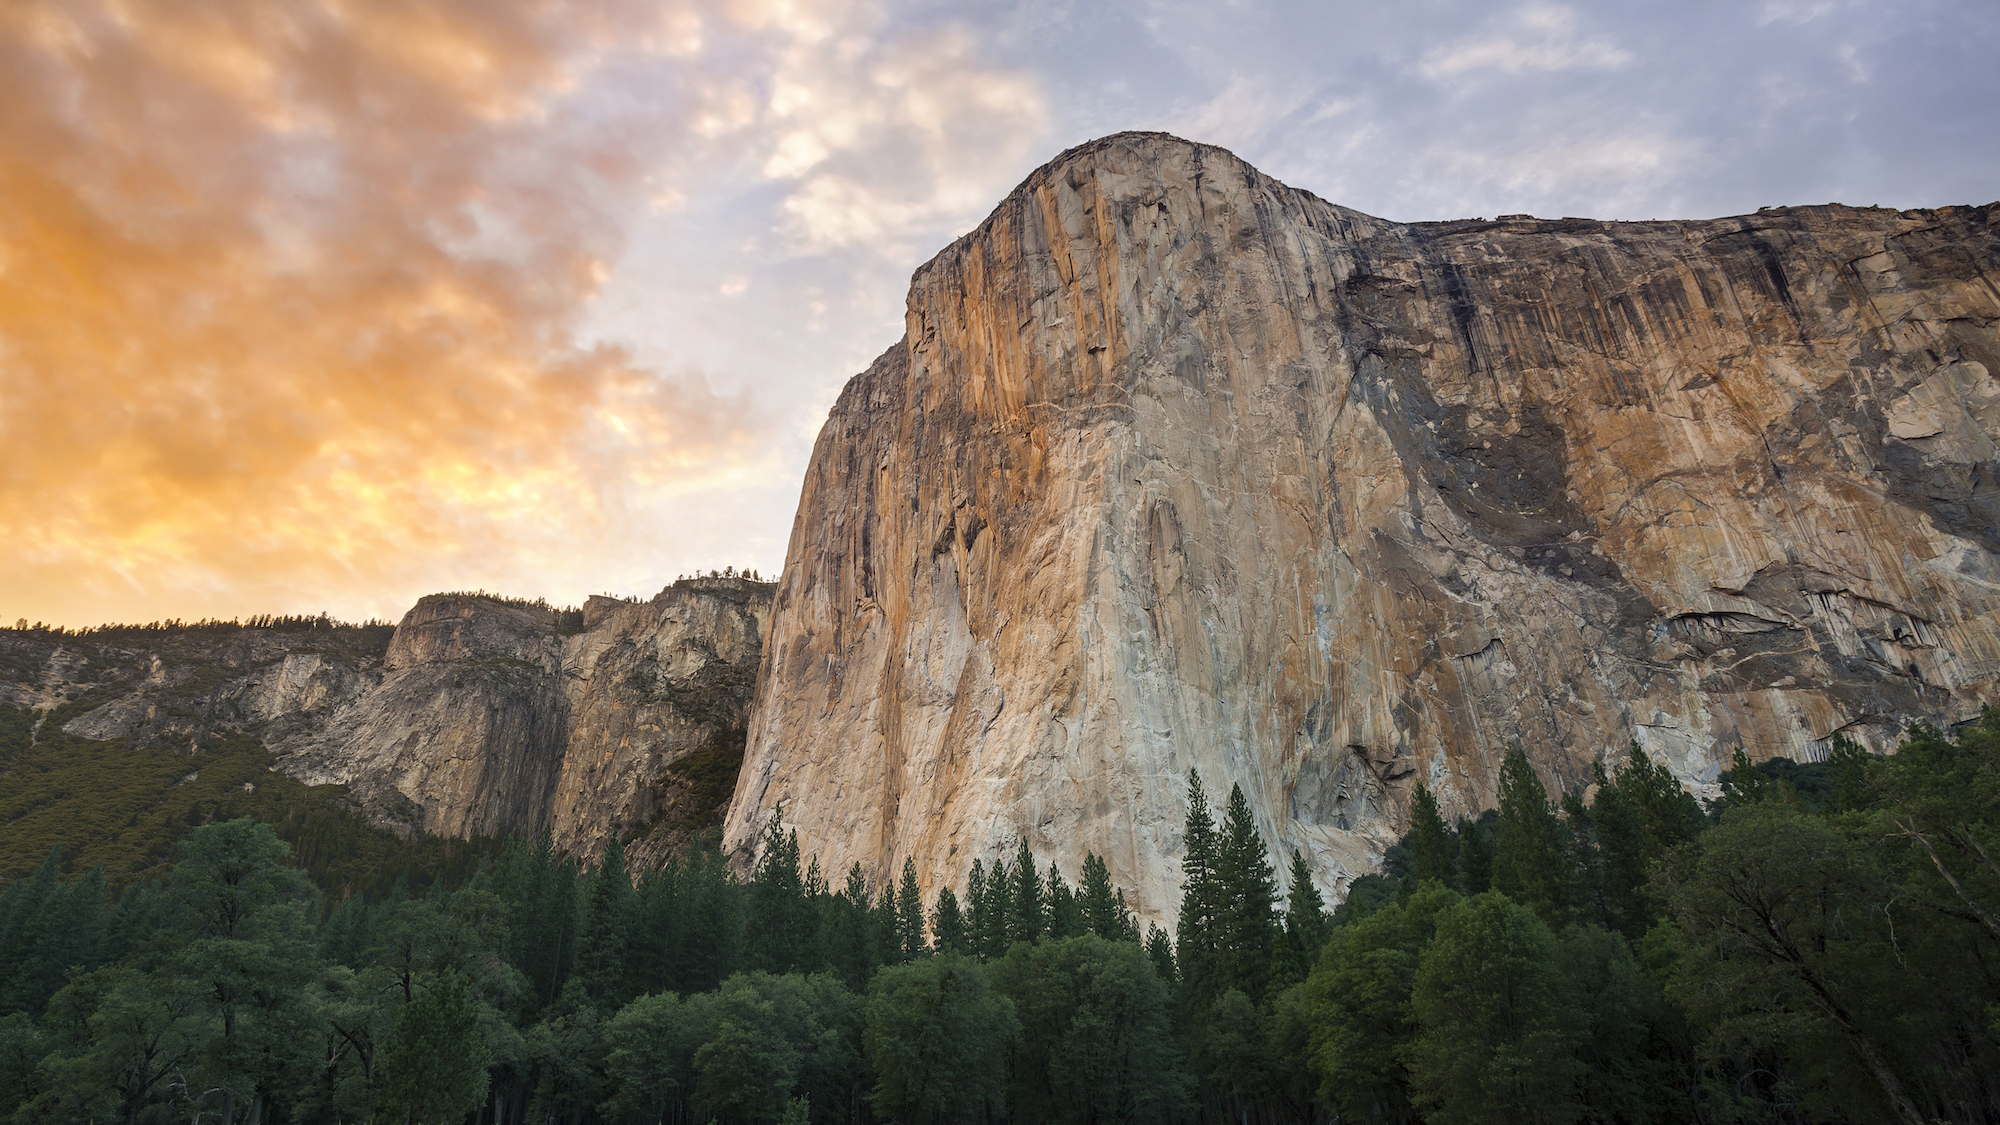 Yosemite Wallpaper Hero Px additionally City Skyline Silhouette Cartoon Wallpaper X in addition F B Ac C Fc Eeb Fd A moreover  besides . on macbook air backgrounds shapes